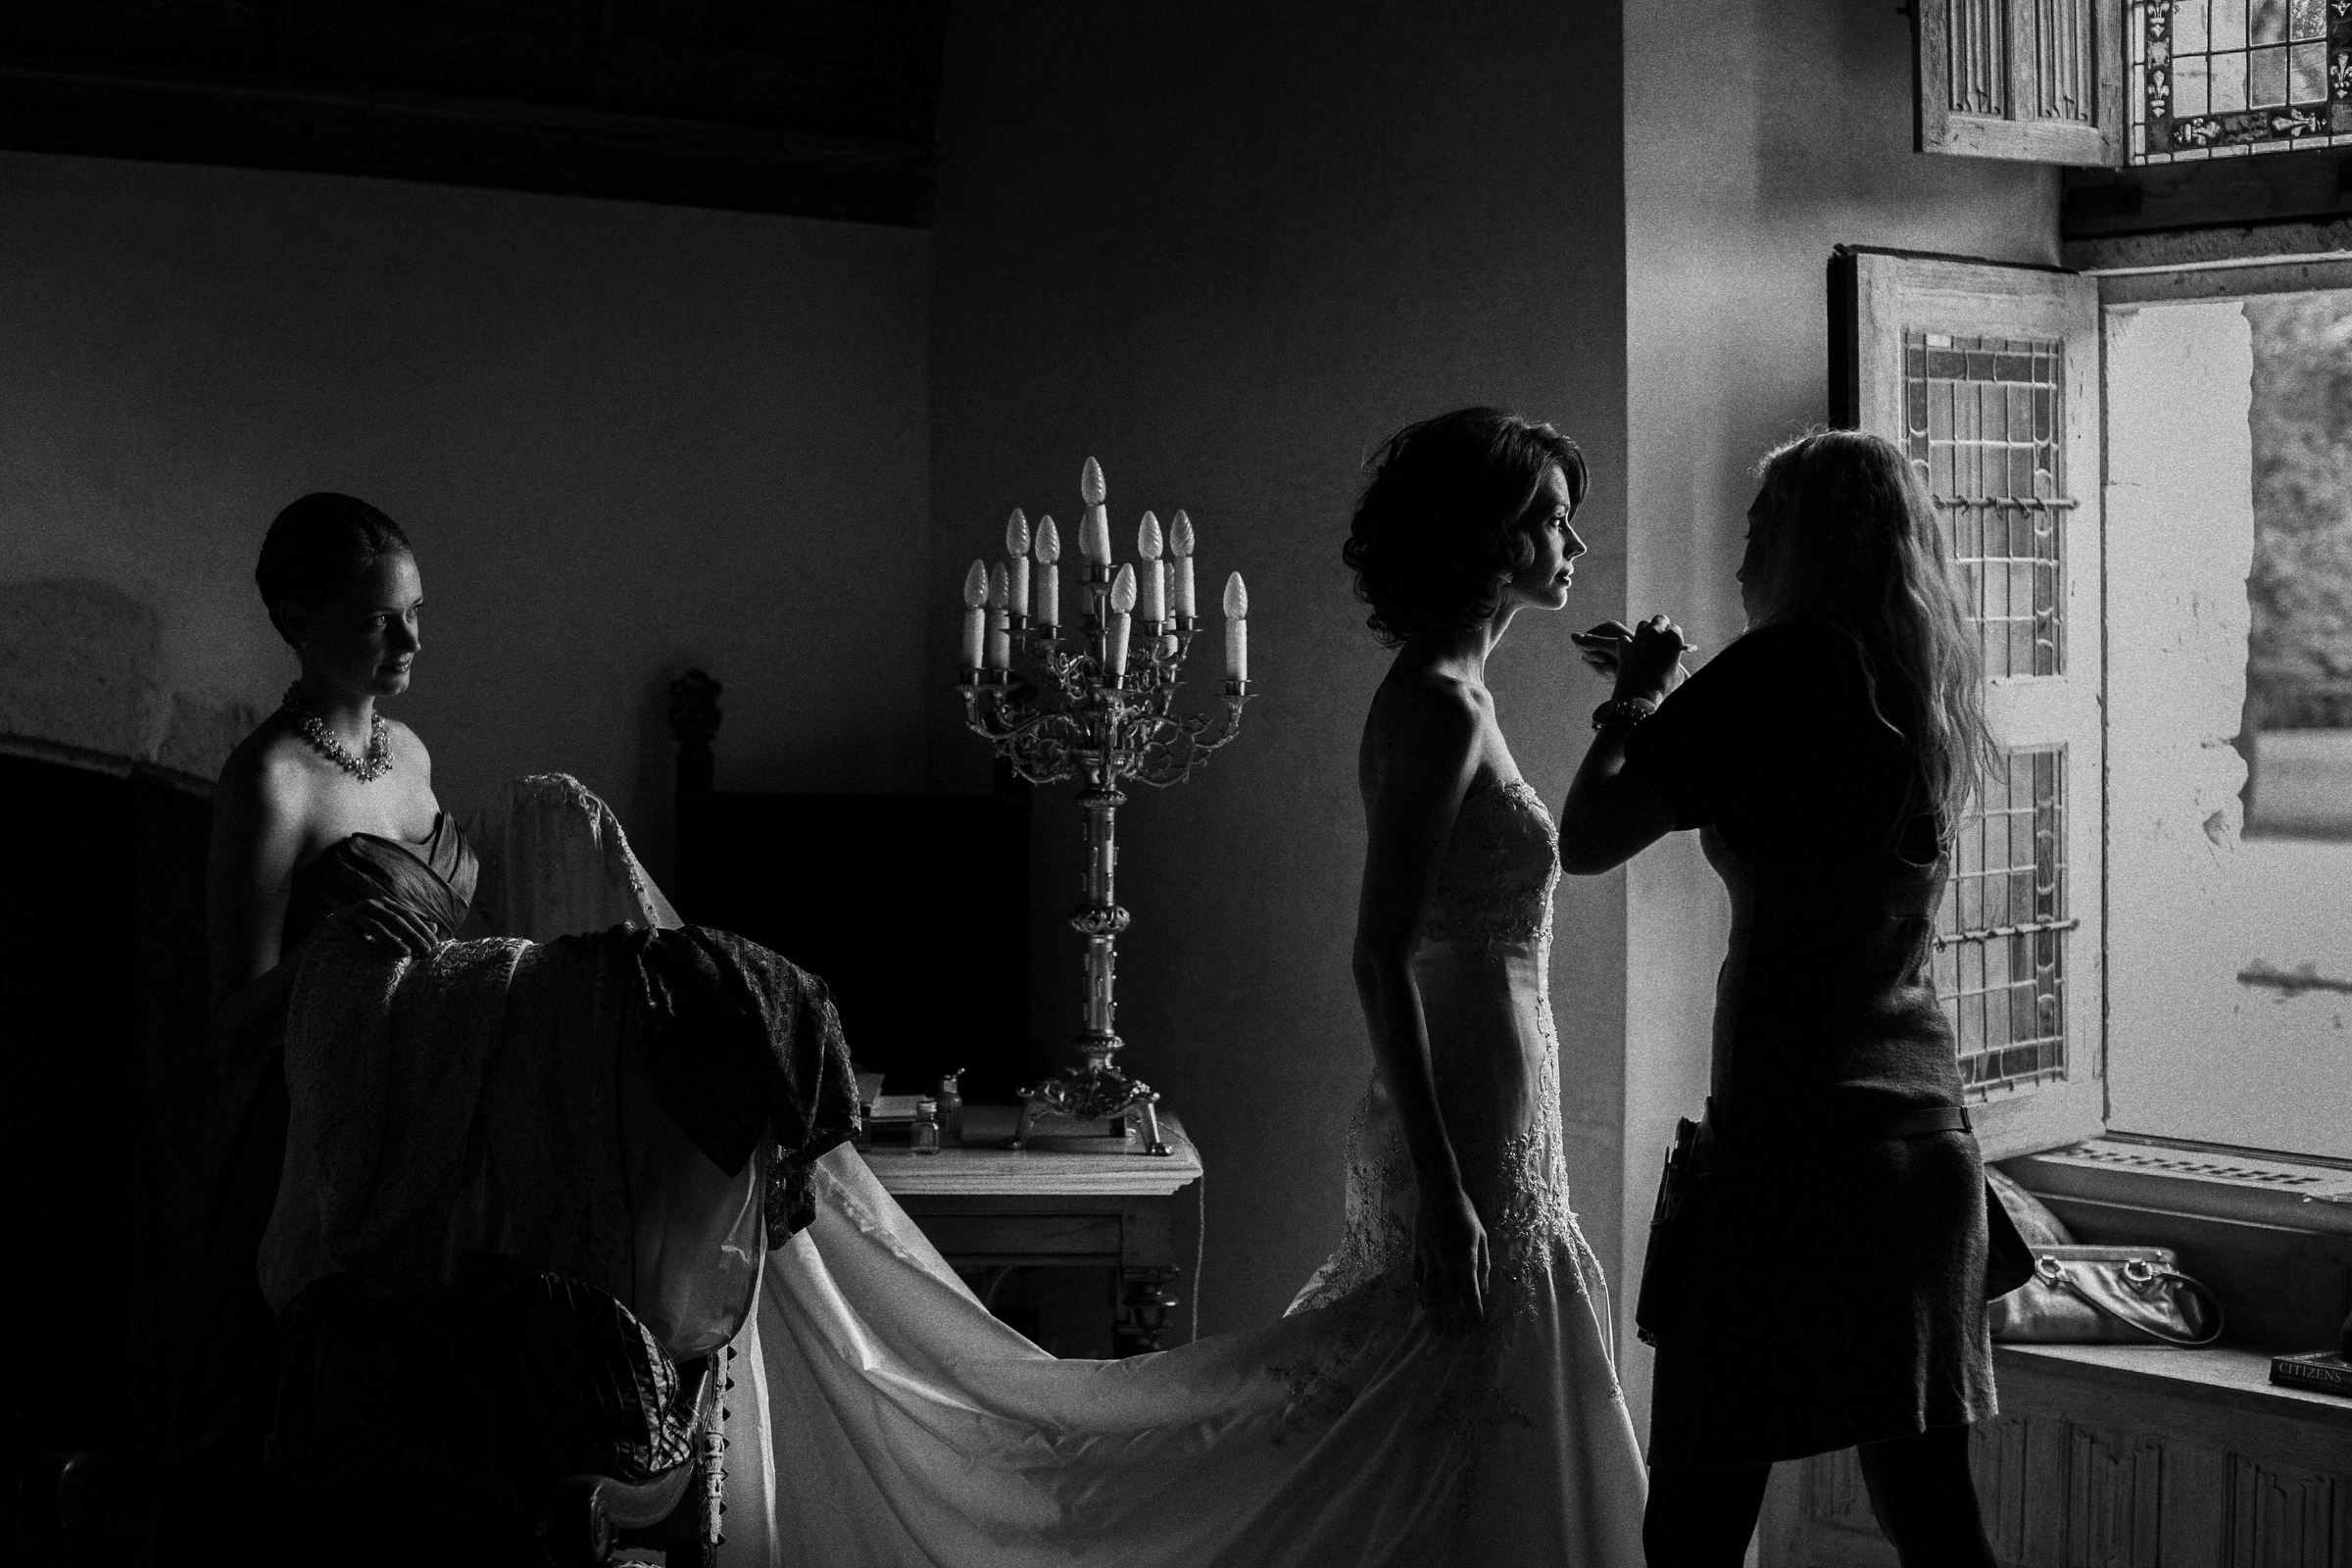 Make-up artist puts final touches on bride in windowlight - photo by Jeff Ascough - England